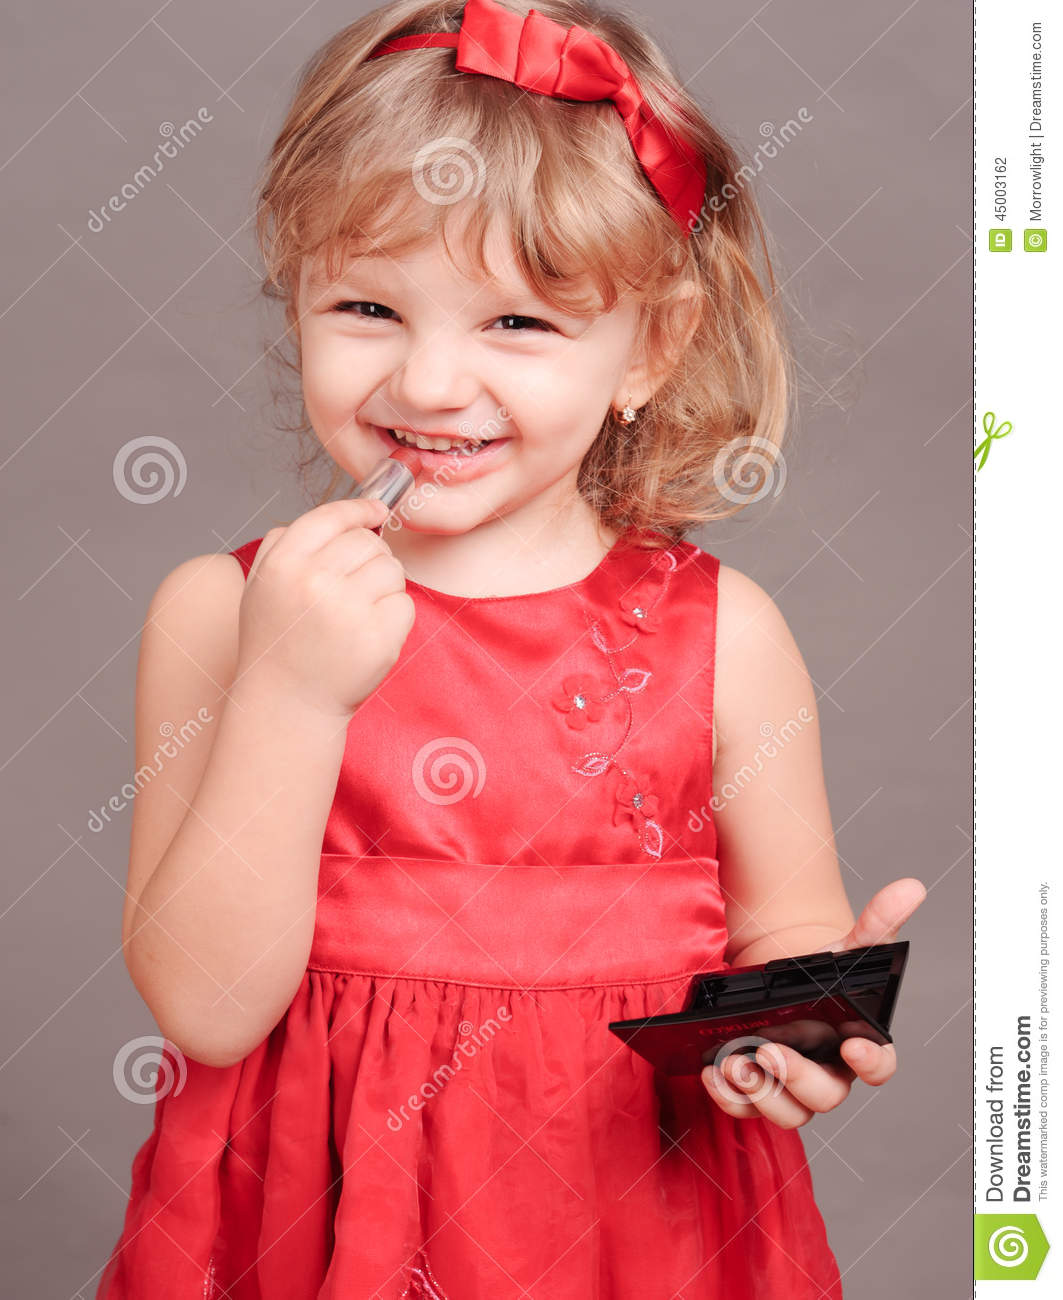 cute baby girl doing makeup stock photo - image of little, fashion